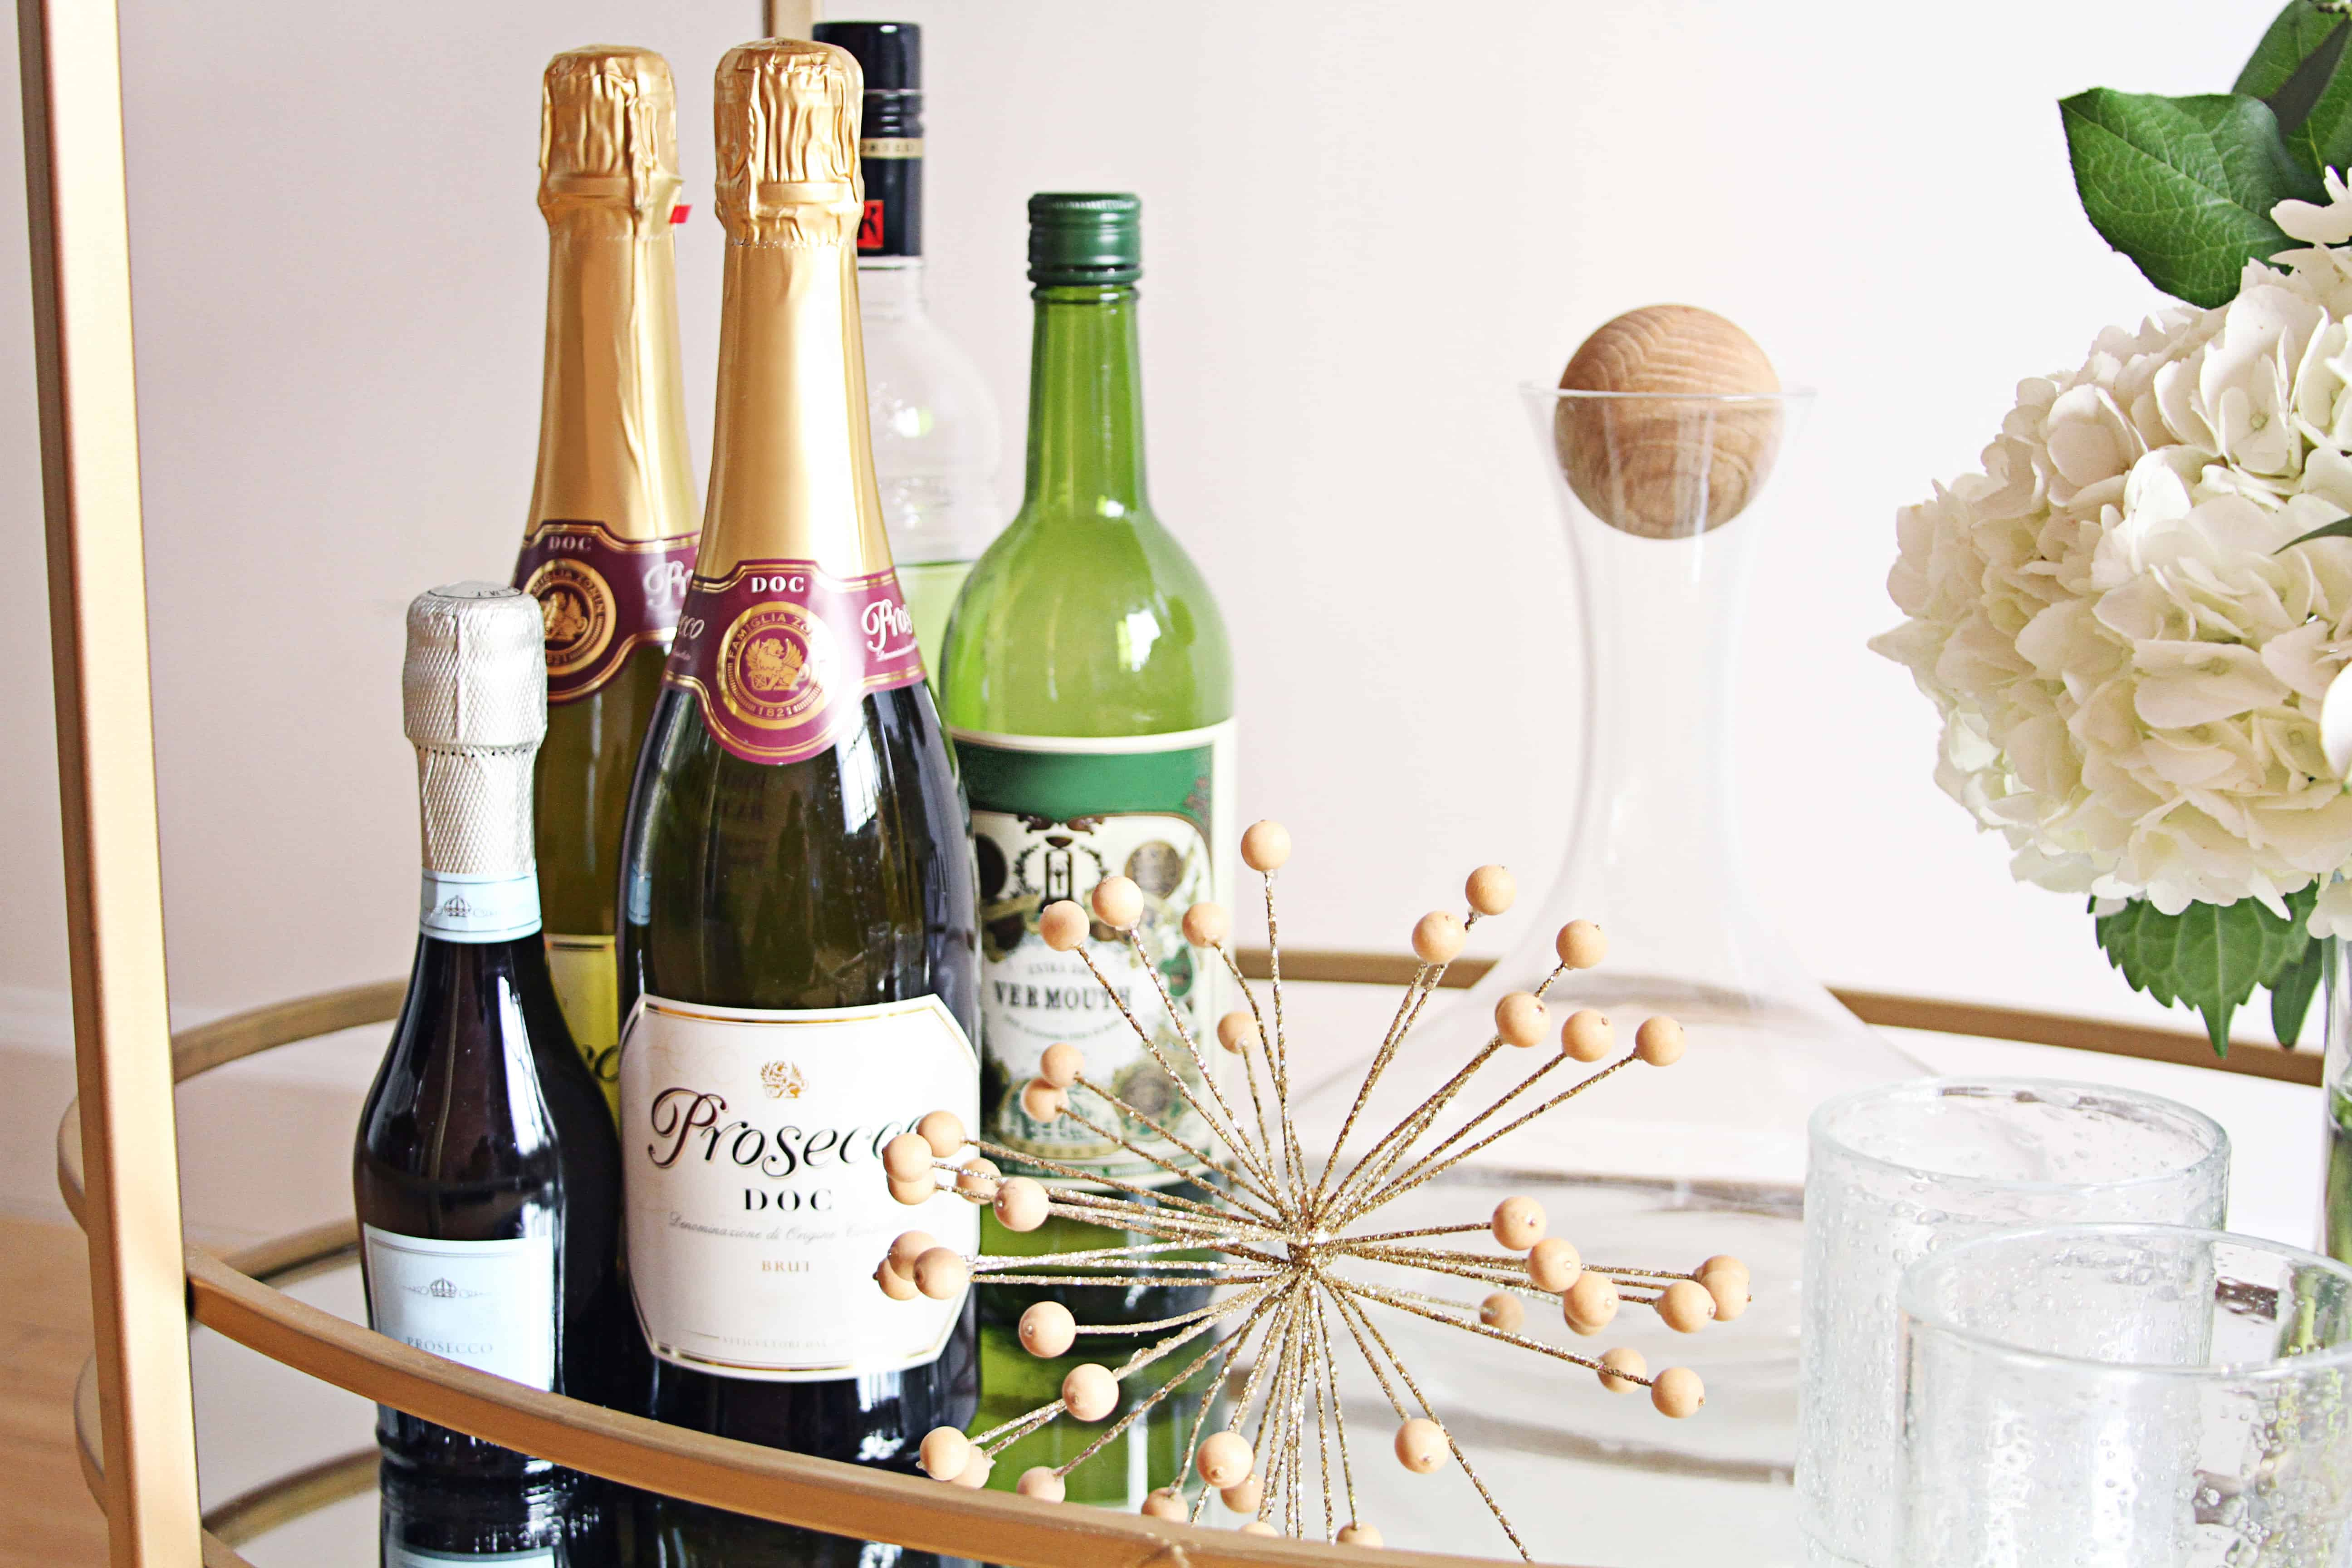 How to Stock a Home Bar for Entertaining This Holiday Season. The perfect party starts with a well-stocked bar so you're to serve any requested drinks and cocktails at Christmas parties. Make sure yours is fully equipped with the help of my handy guide.